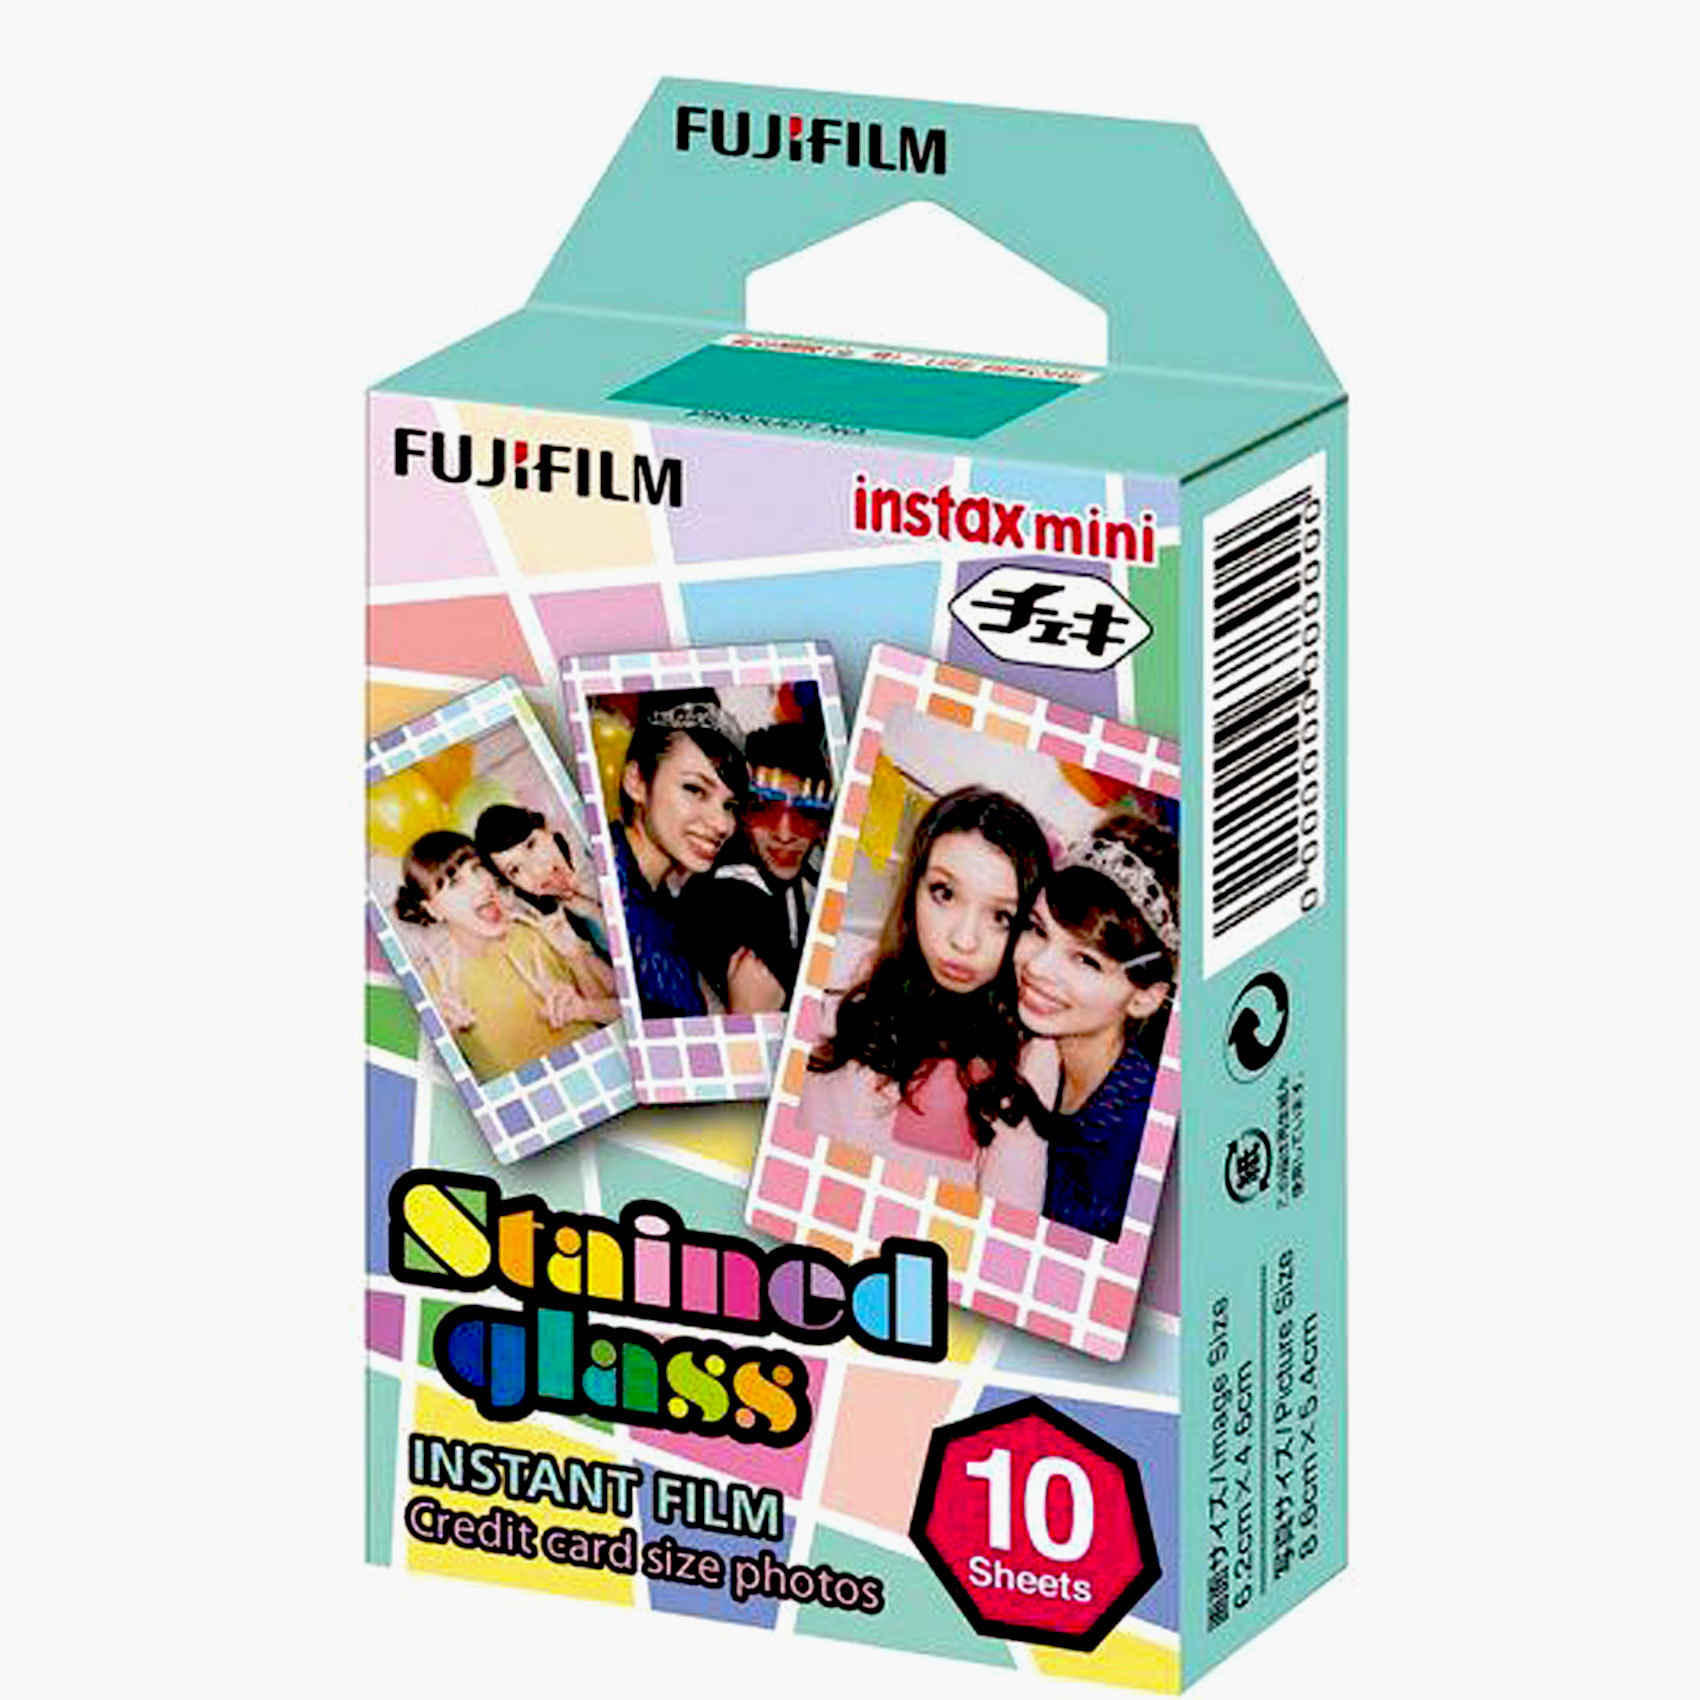 FUJIFILM -FILM INSTAX MINI S.GLASS